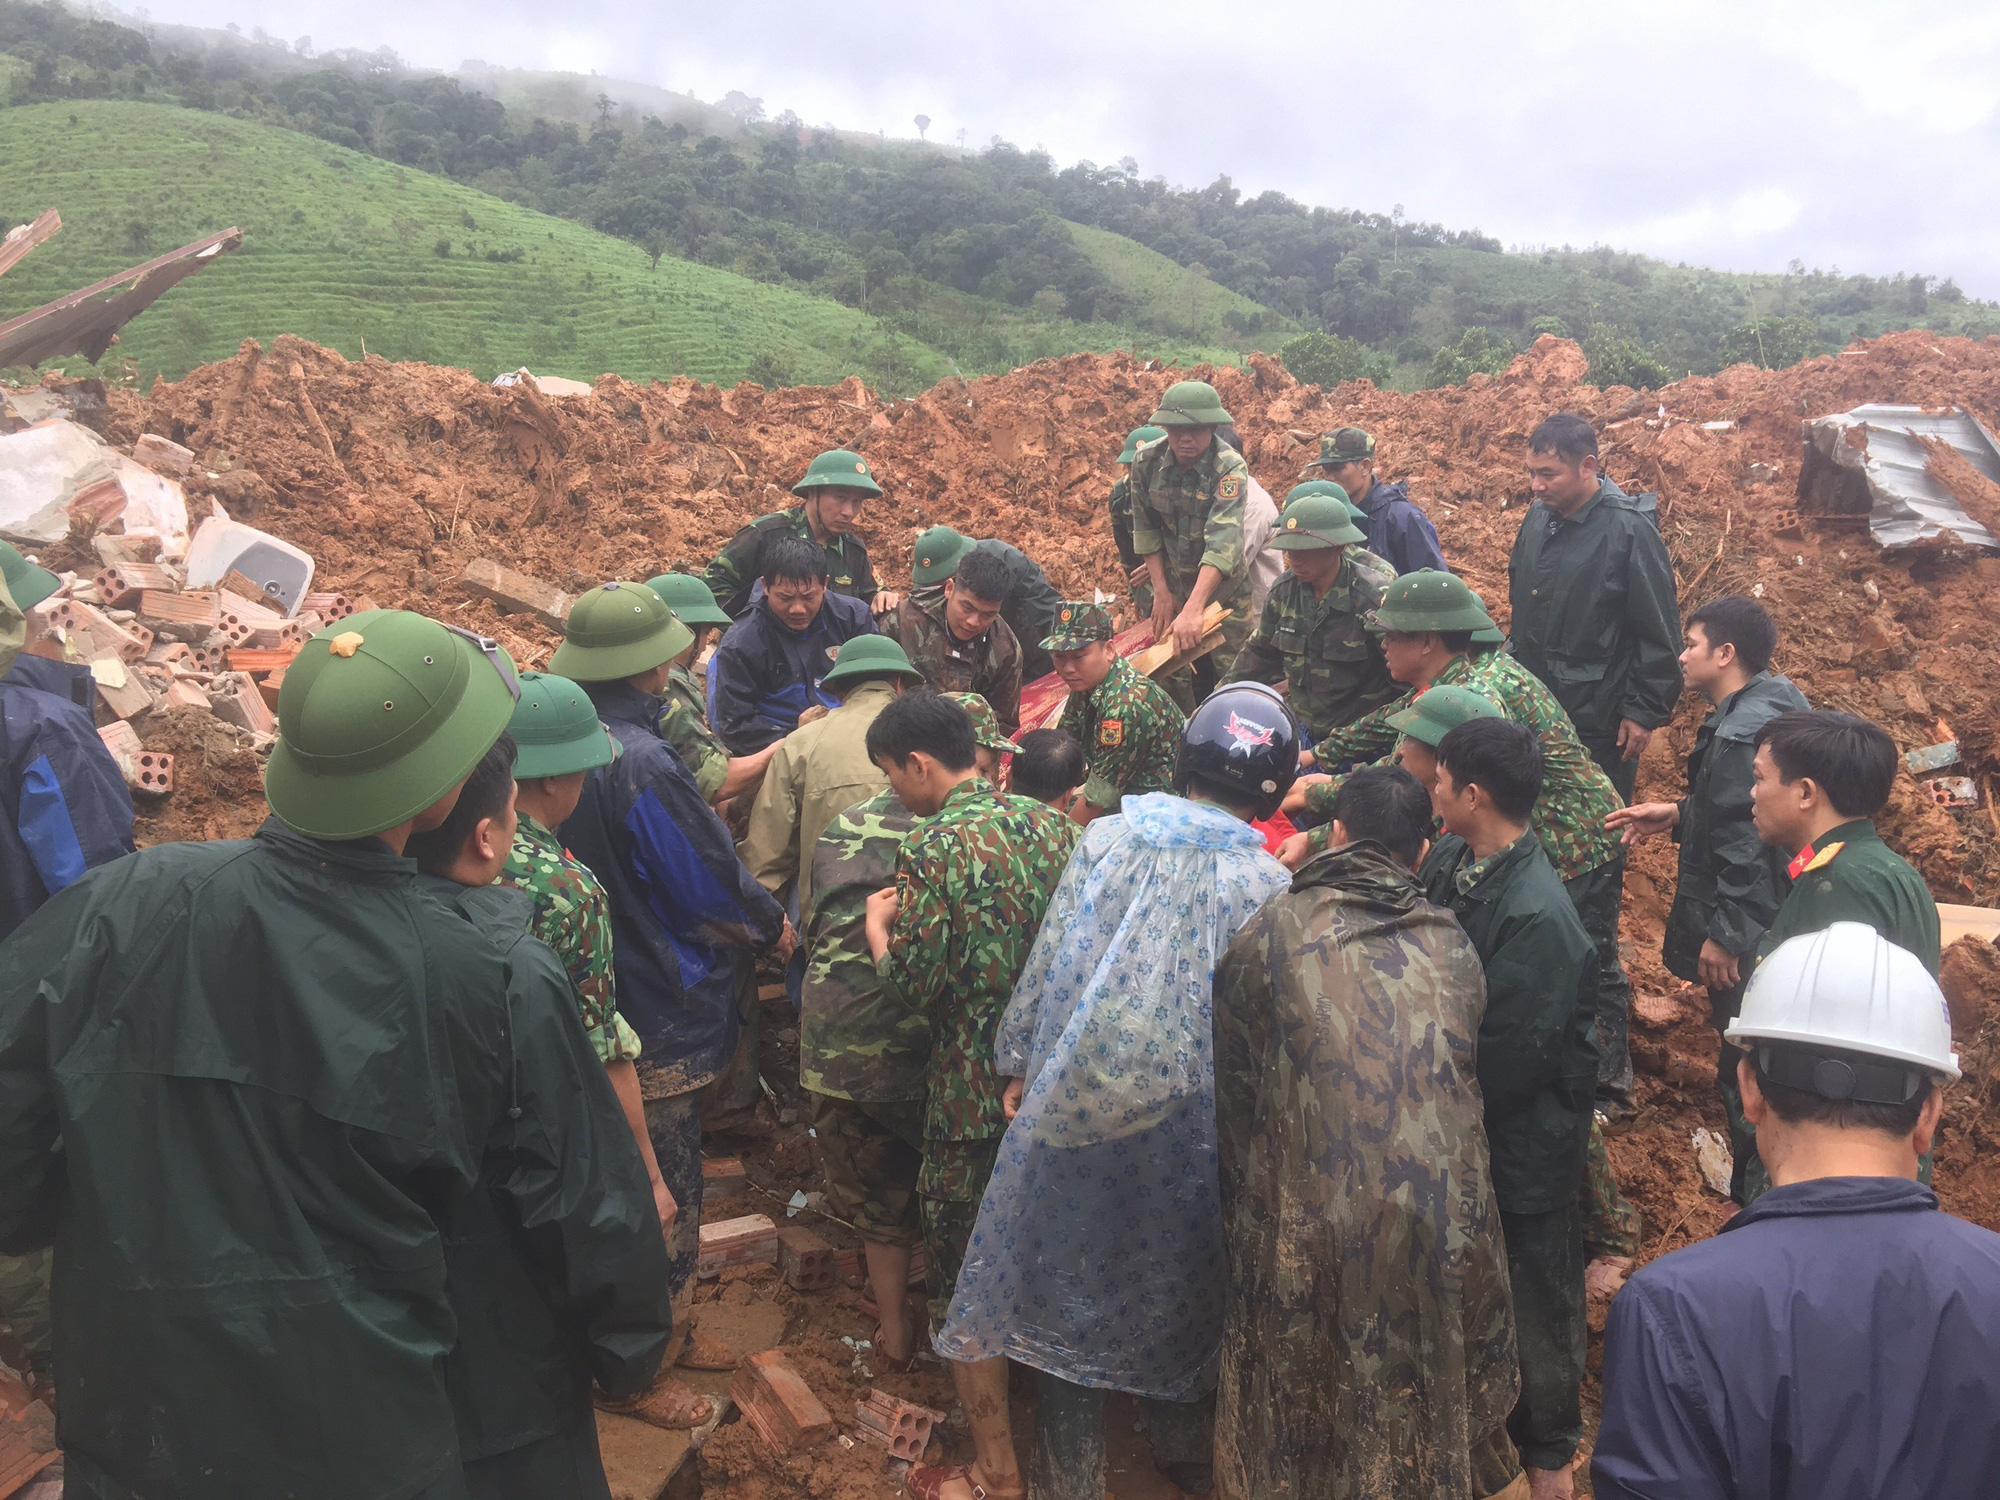 Soldiers buried following mudslide in central Vietnam